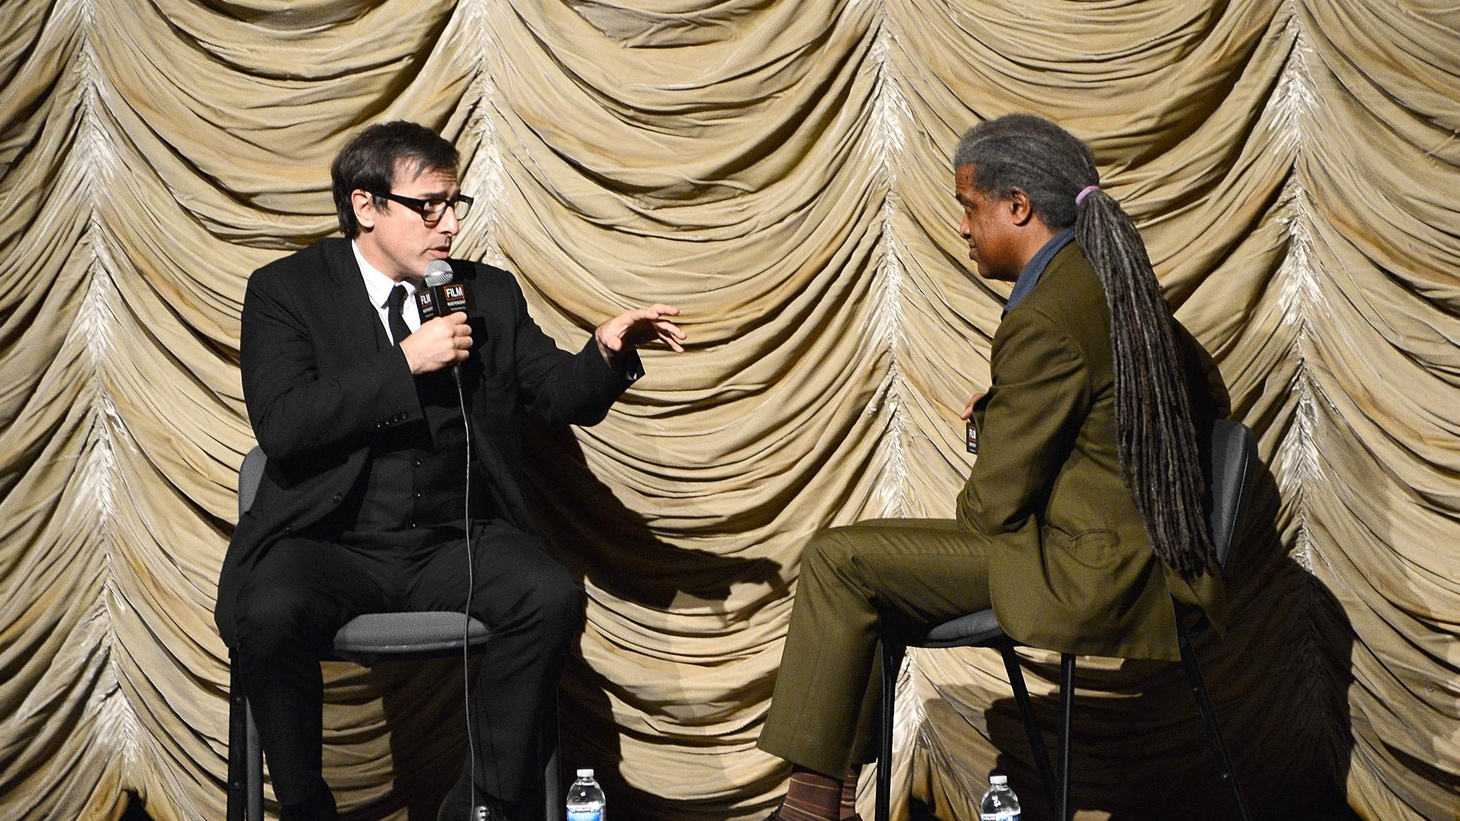 David O. Russell talks about music, cliches, and Jennifer Lawrence in a neck brace. Recorded live at Film Independent at LACMA.